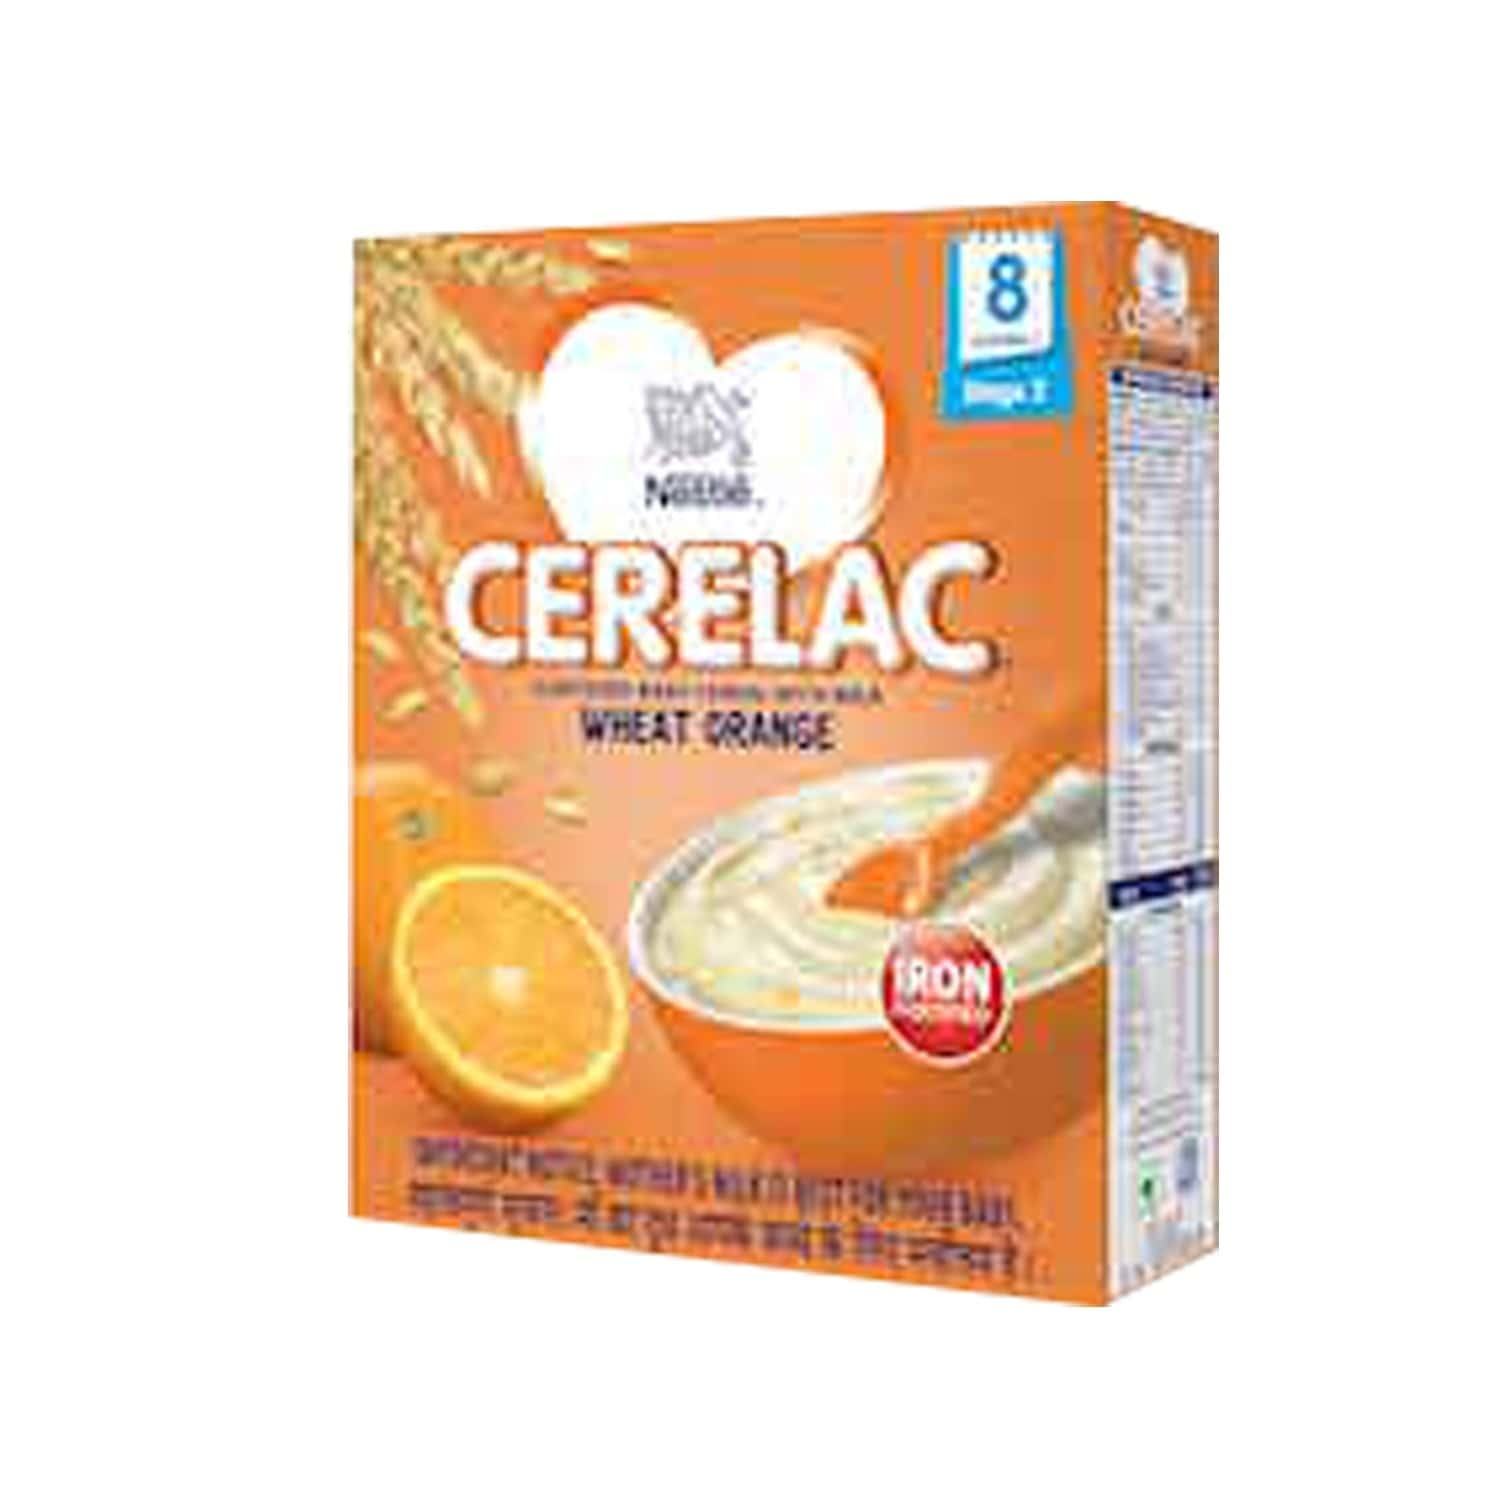 Nestle Cerelac Infant Cereal Stage-2 (8 - 24 Months) Wheat Orange 300 Gm